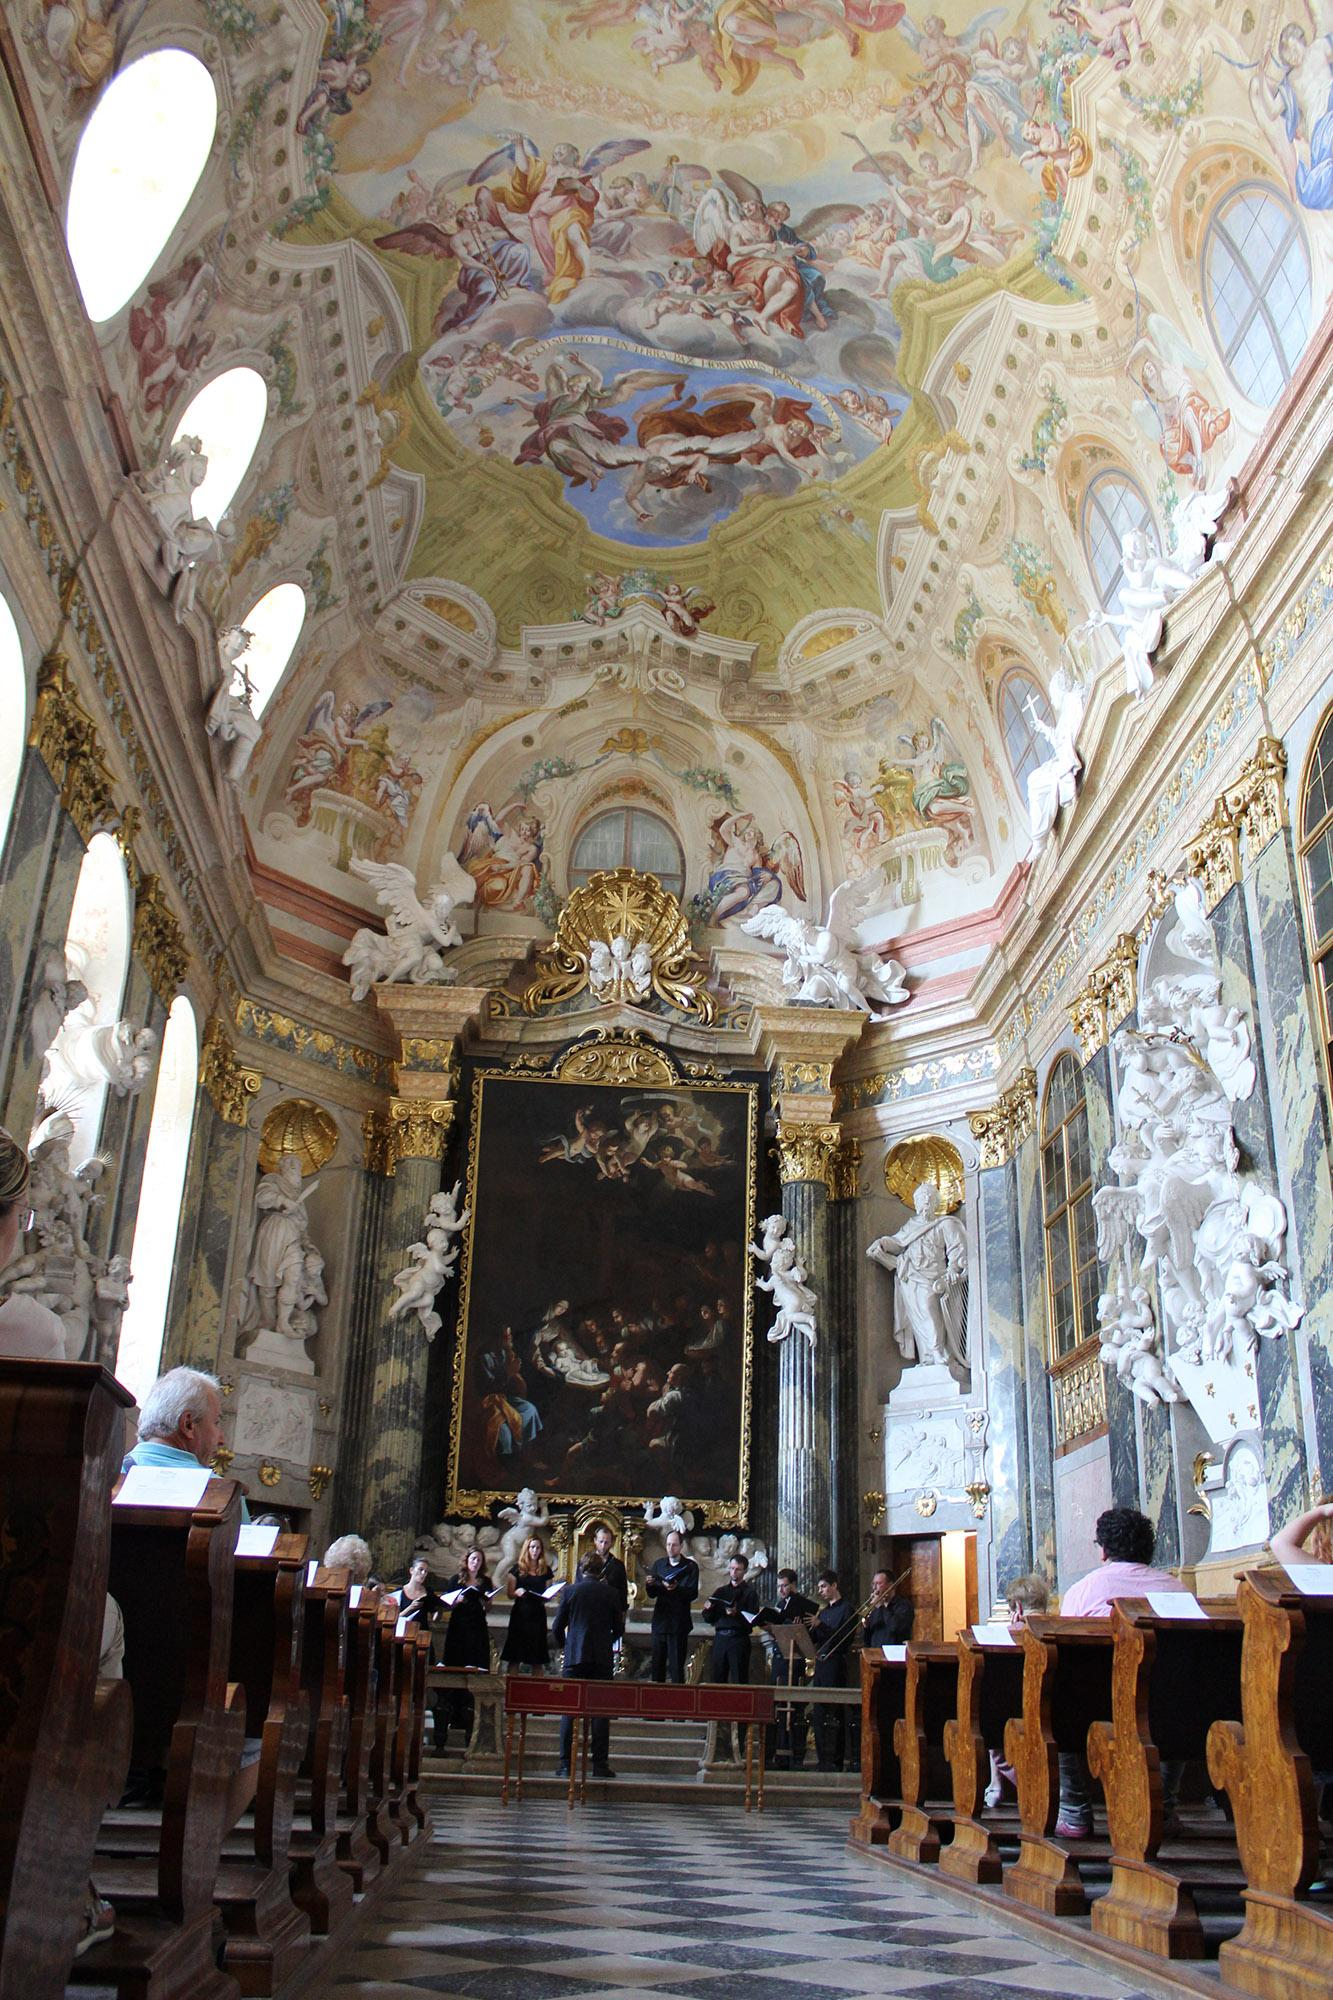 The beautifully decorated Castle Chapel from 1729, with an organ constructed by Lothar Franz Walther, is a purely Central European baroque masterpiece. – © Lenka Beránková